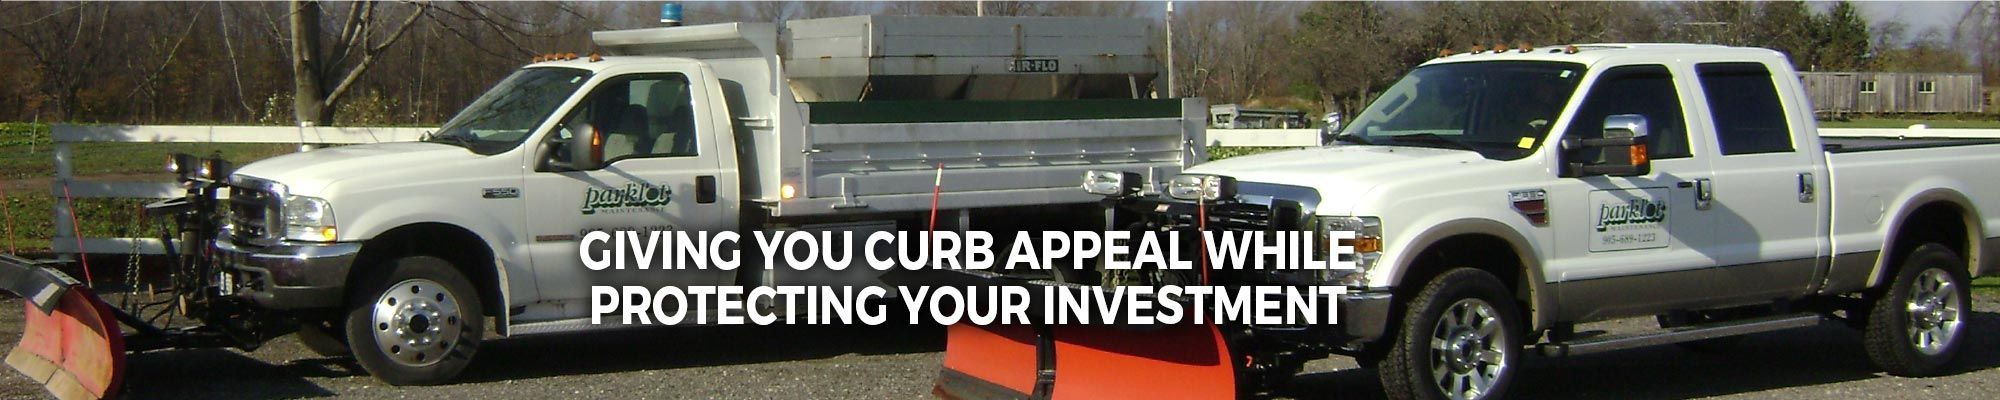 Giving You Curb Appeal, Protecting Your Investment | snow plow trucks